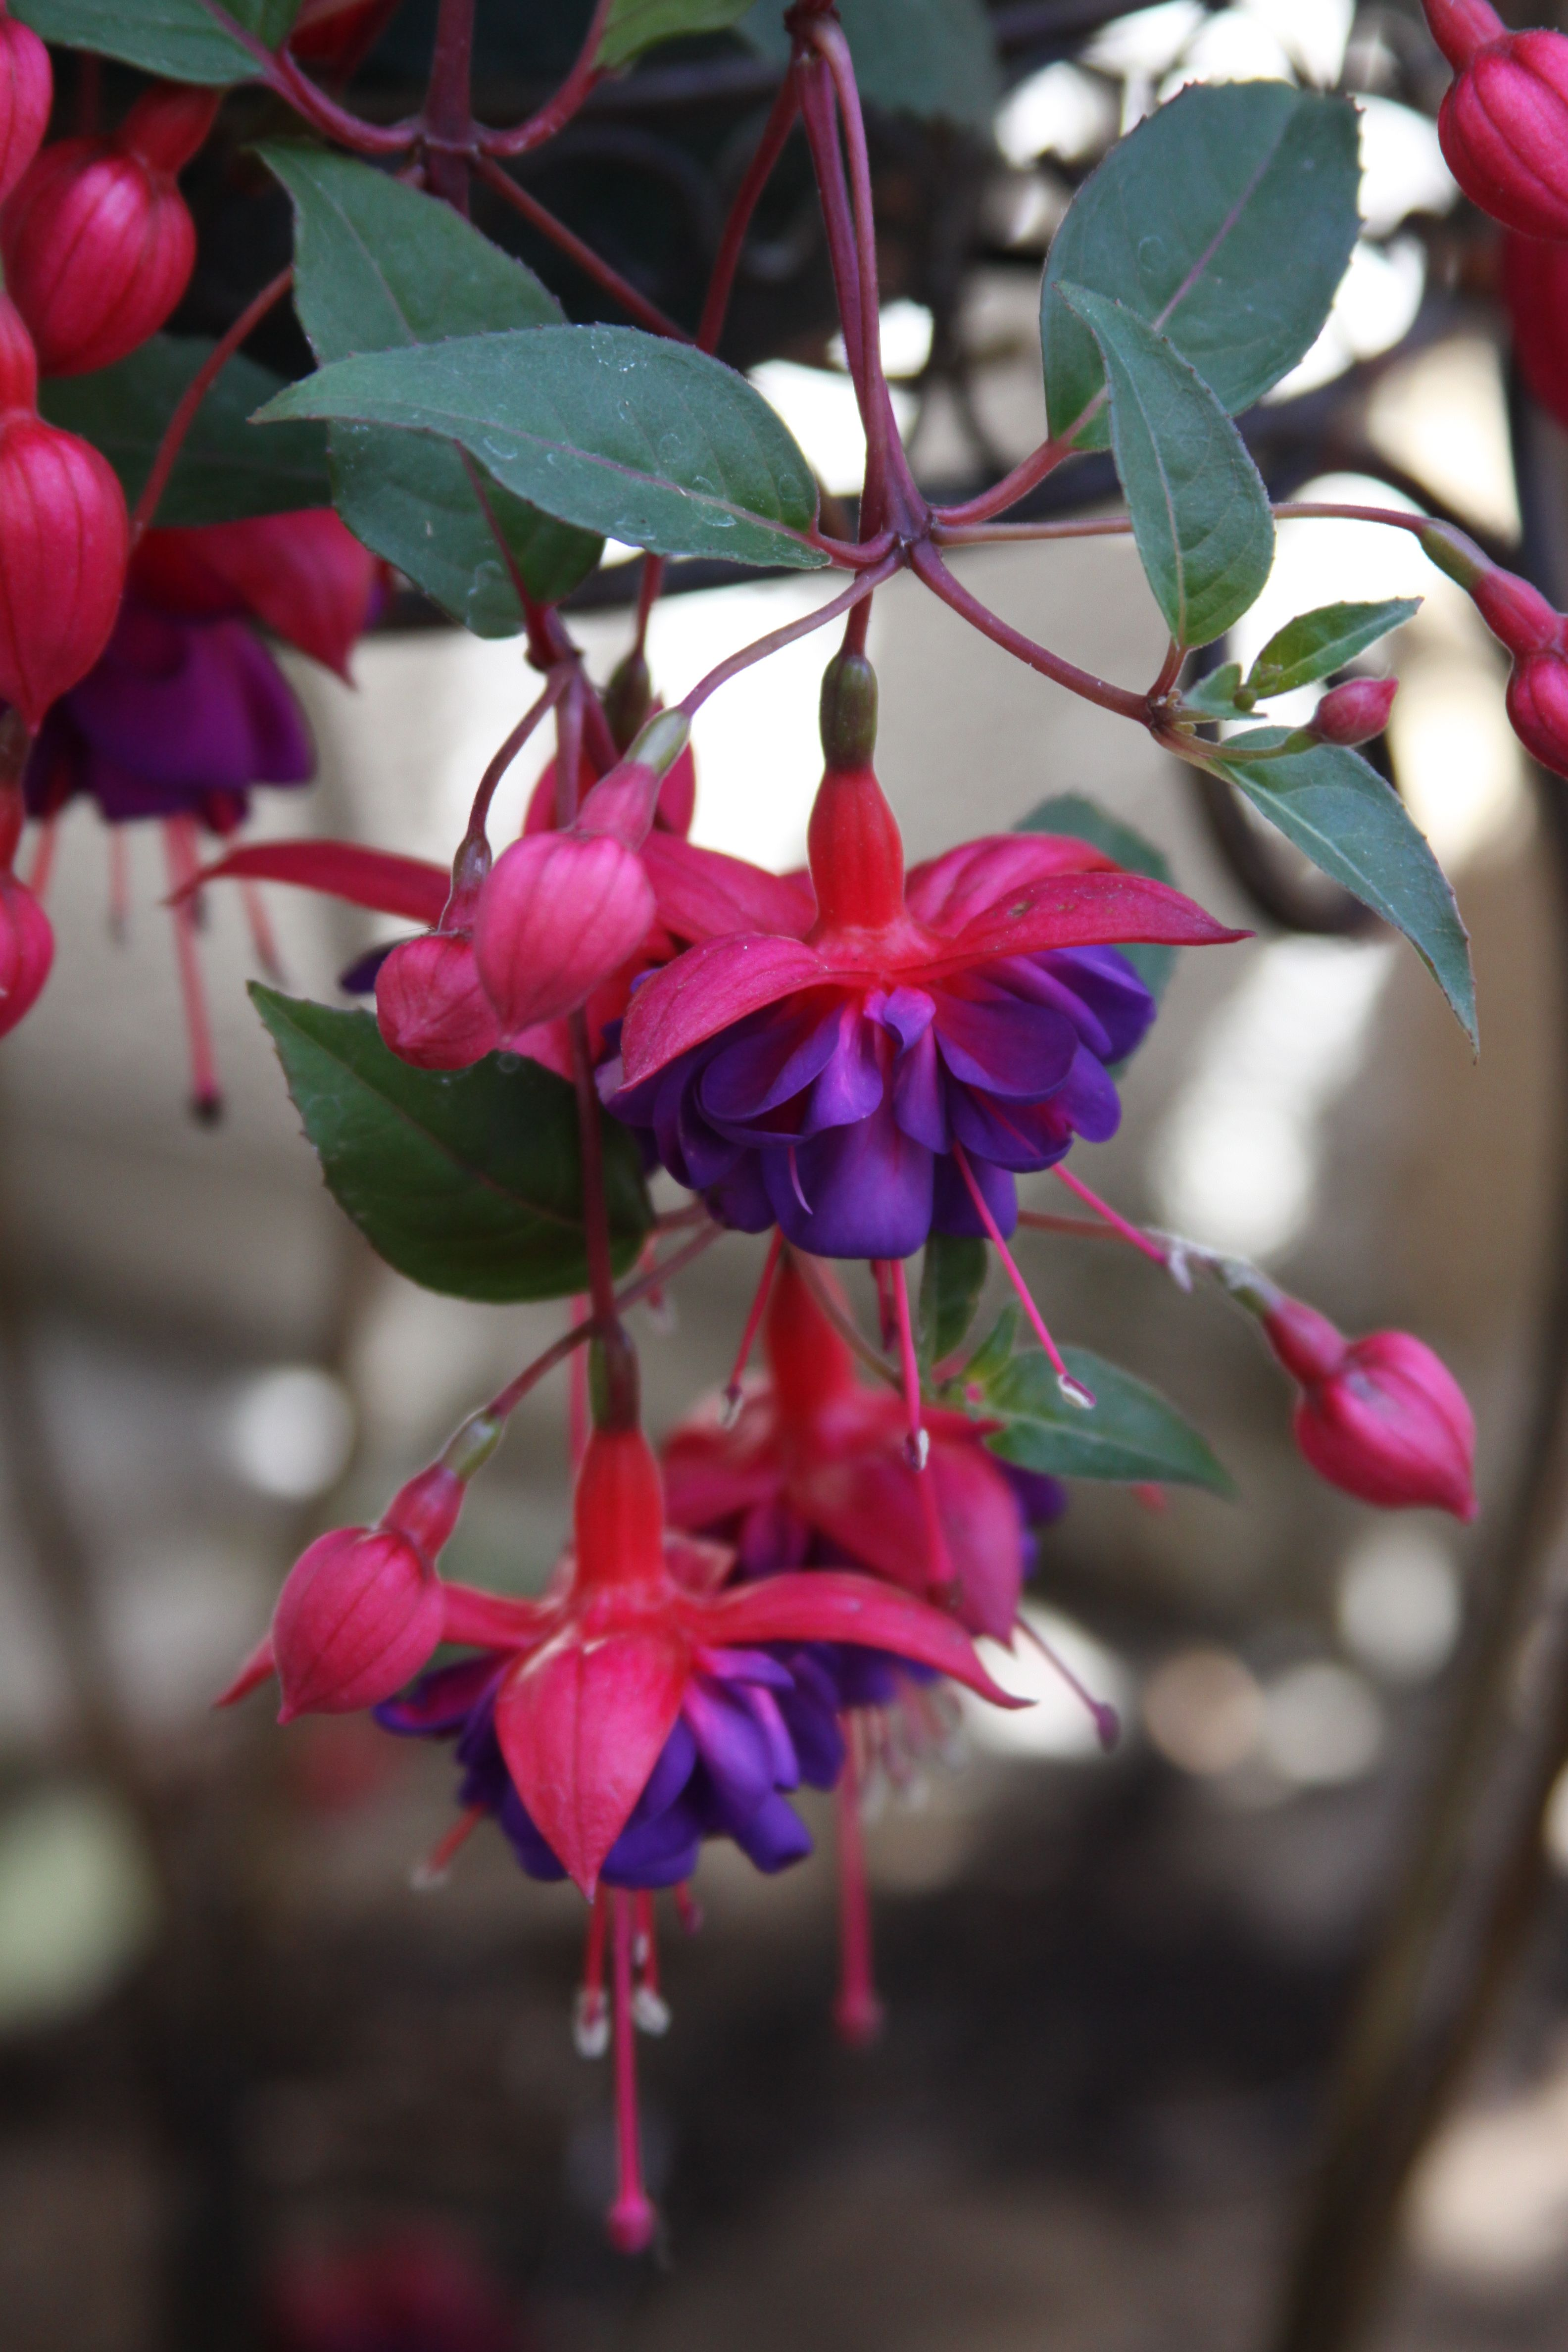 Hardy Perennial Fuchsia Benisser Hardy 6 large plugs red sepals red purple